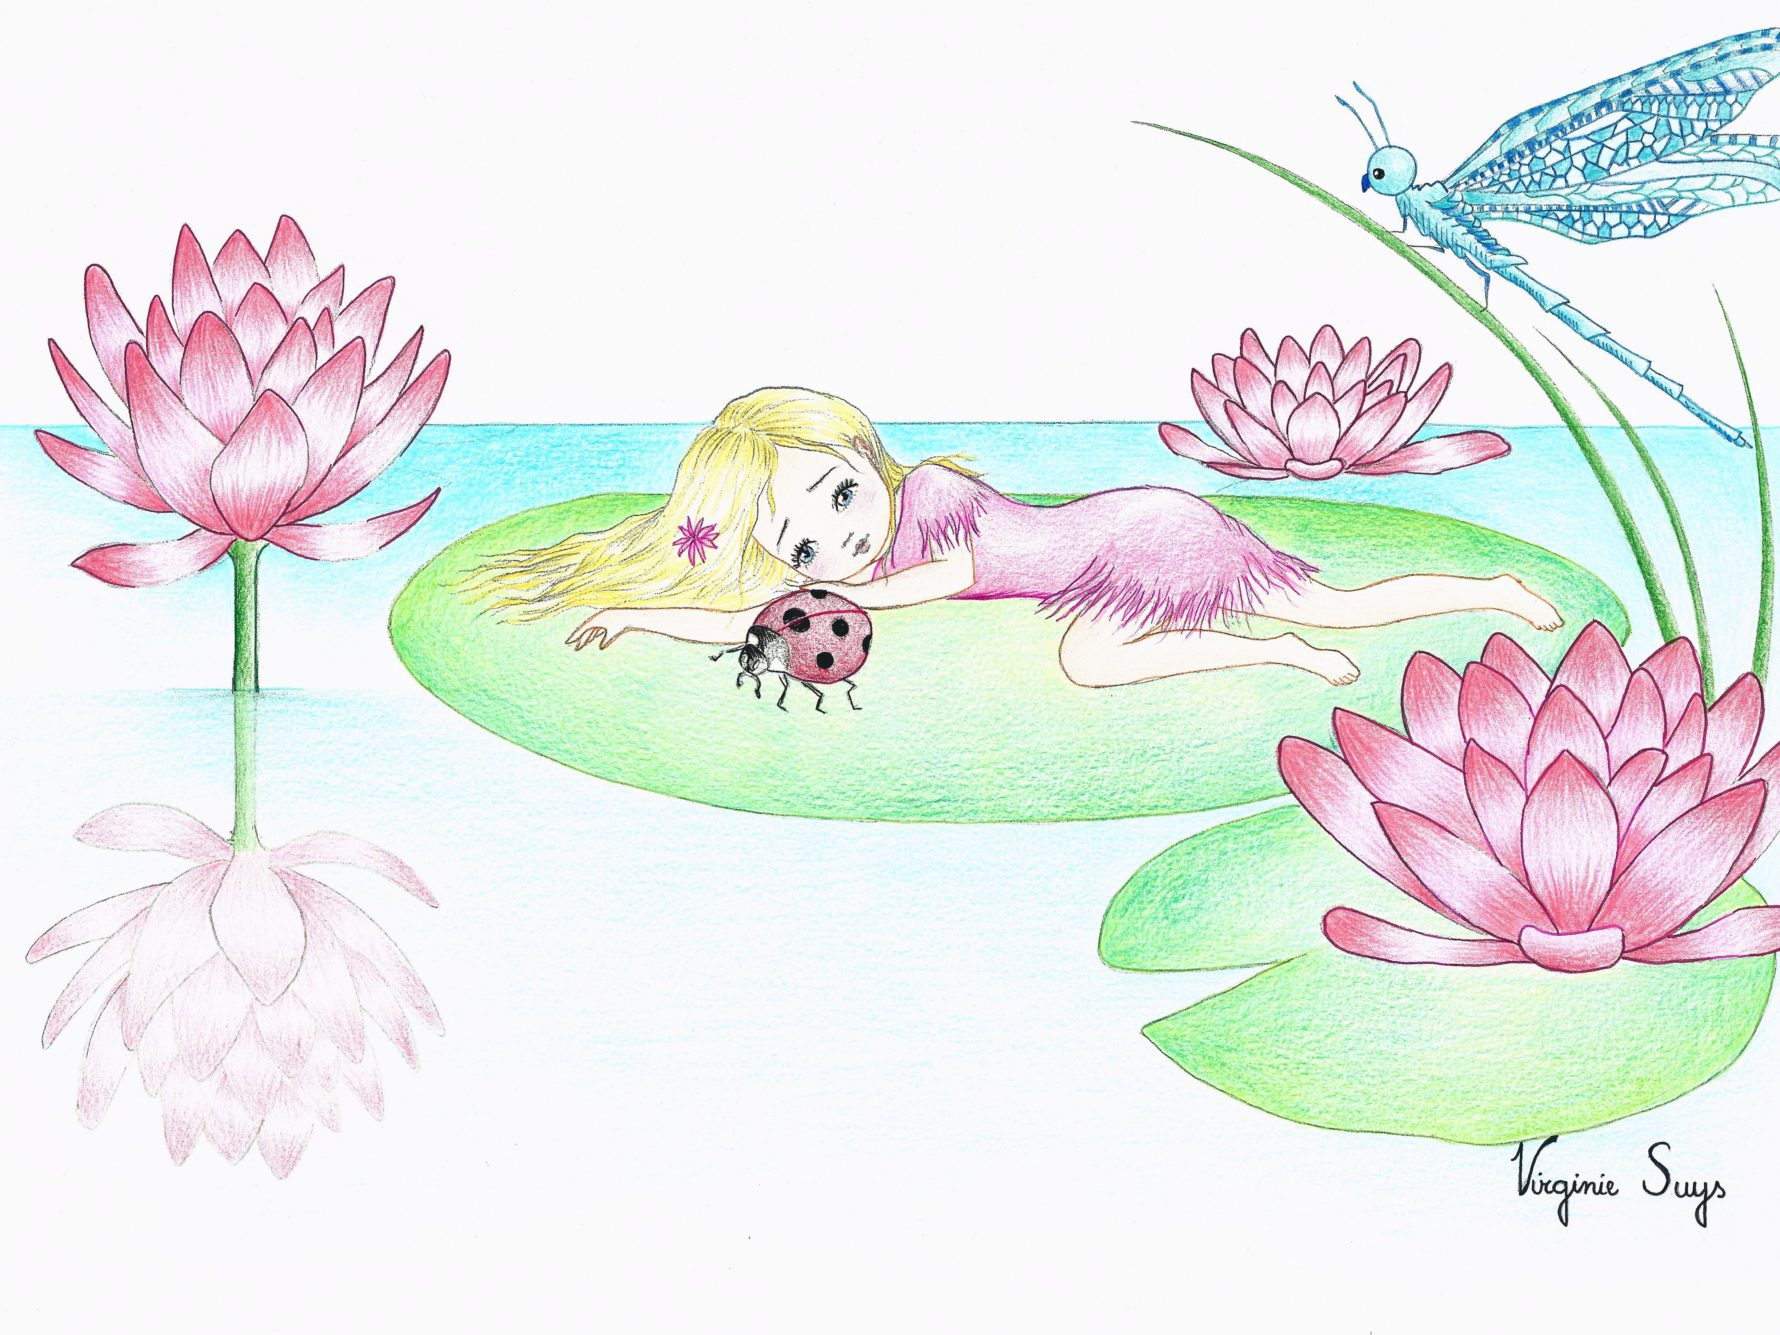 Virginie Suys Thumbelina by the waterlillys pink & green illustration